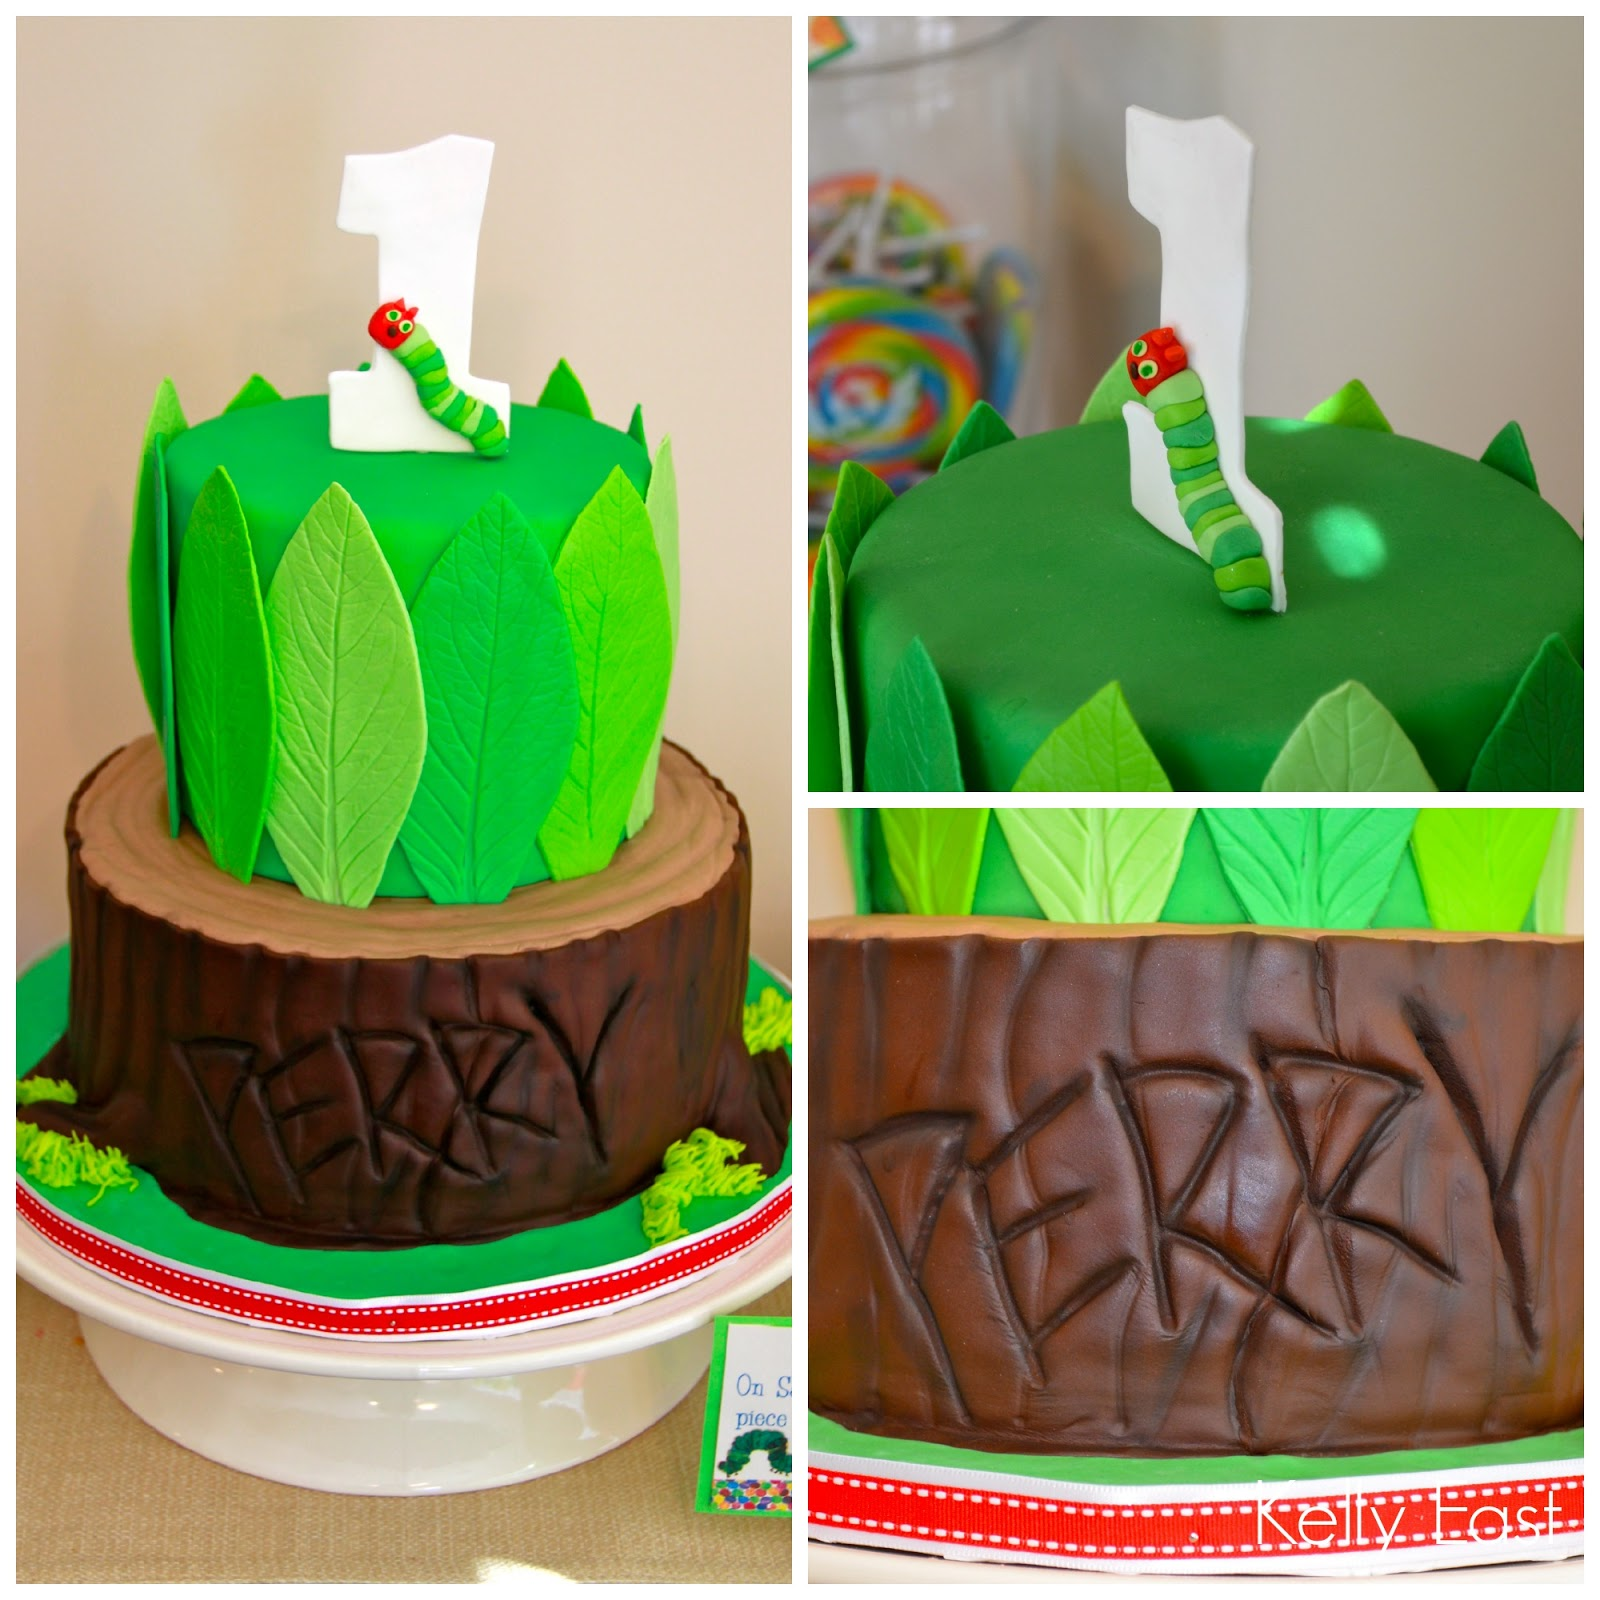 A Very Hungry Caterpillar Birthday The Details Creative In Color